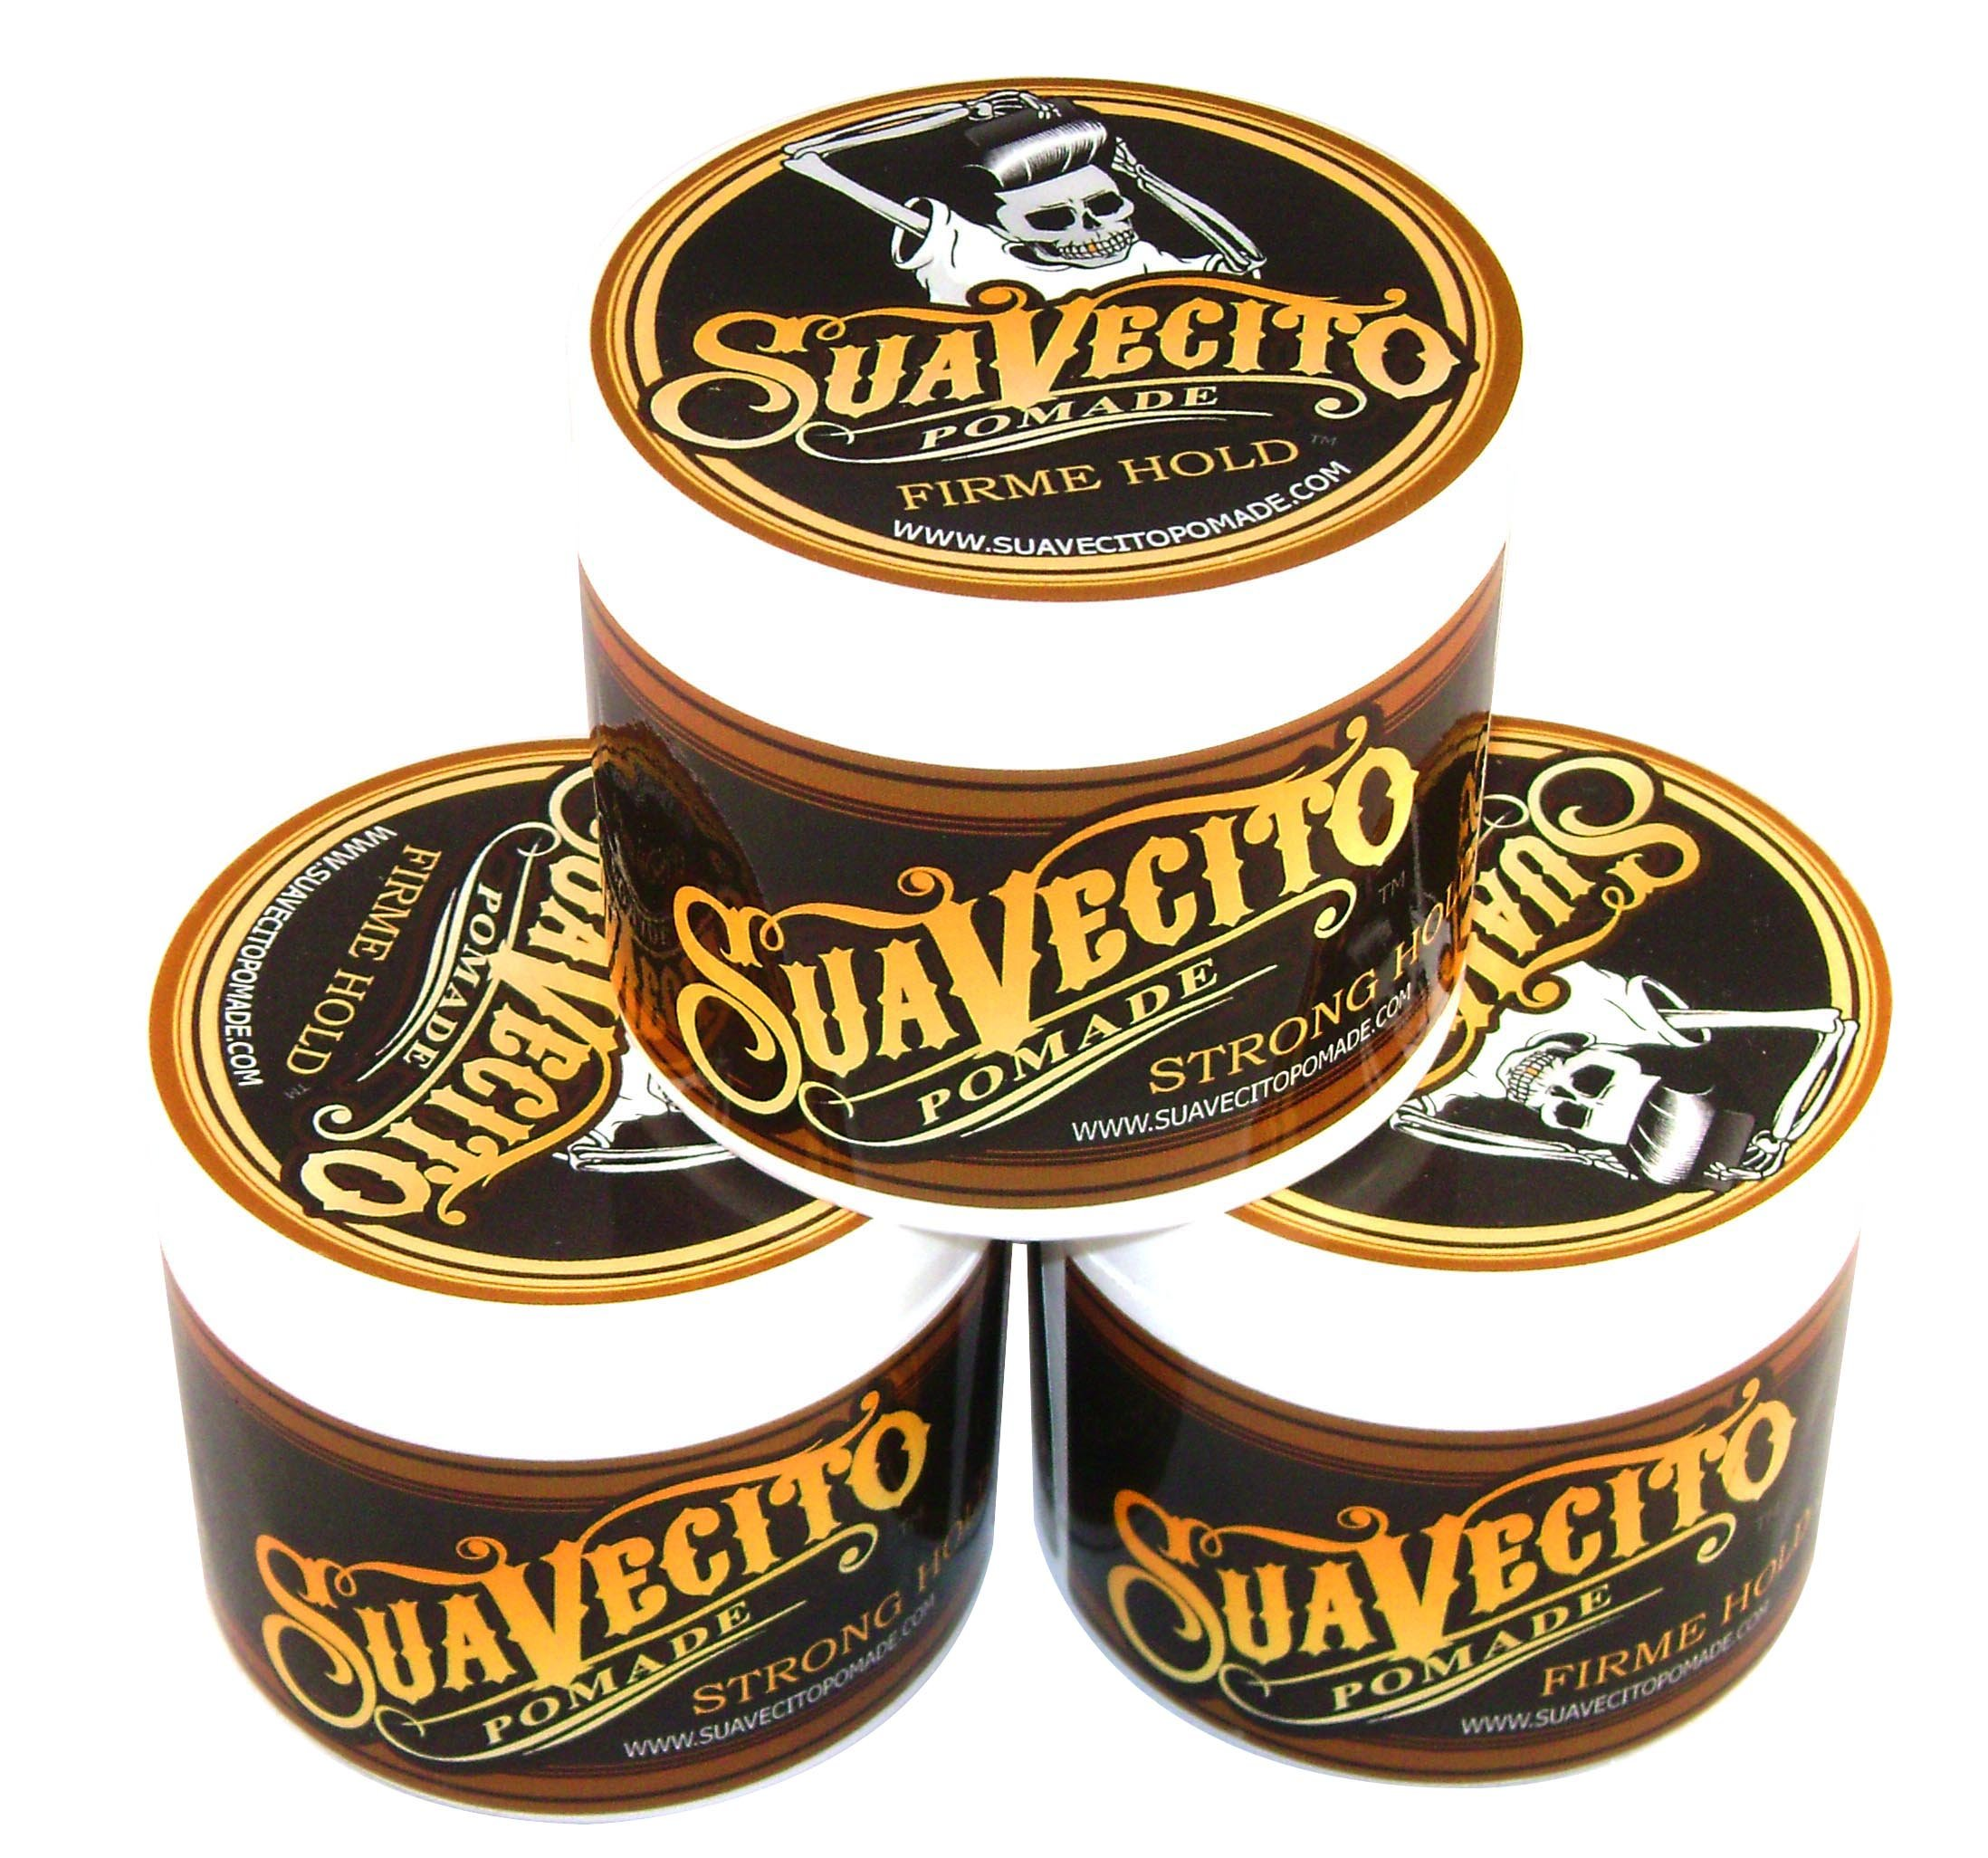 Suavecito Pomade Firme (Strong) Hold 4 oz (Pack of 3) by Suavecito Pomade (Image #1)